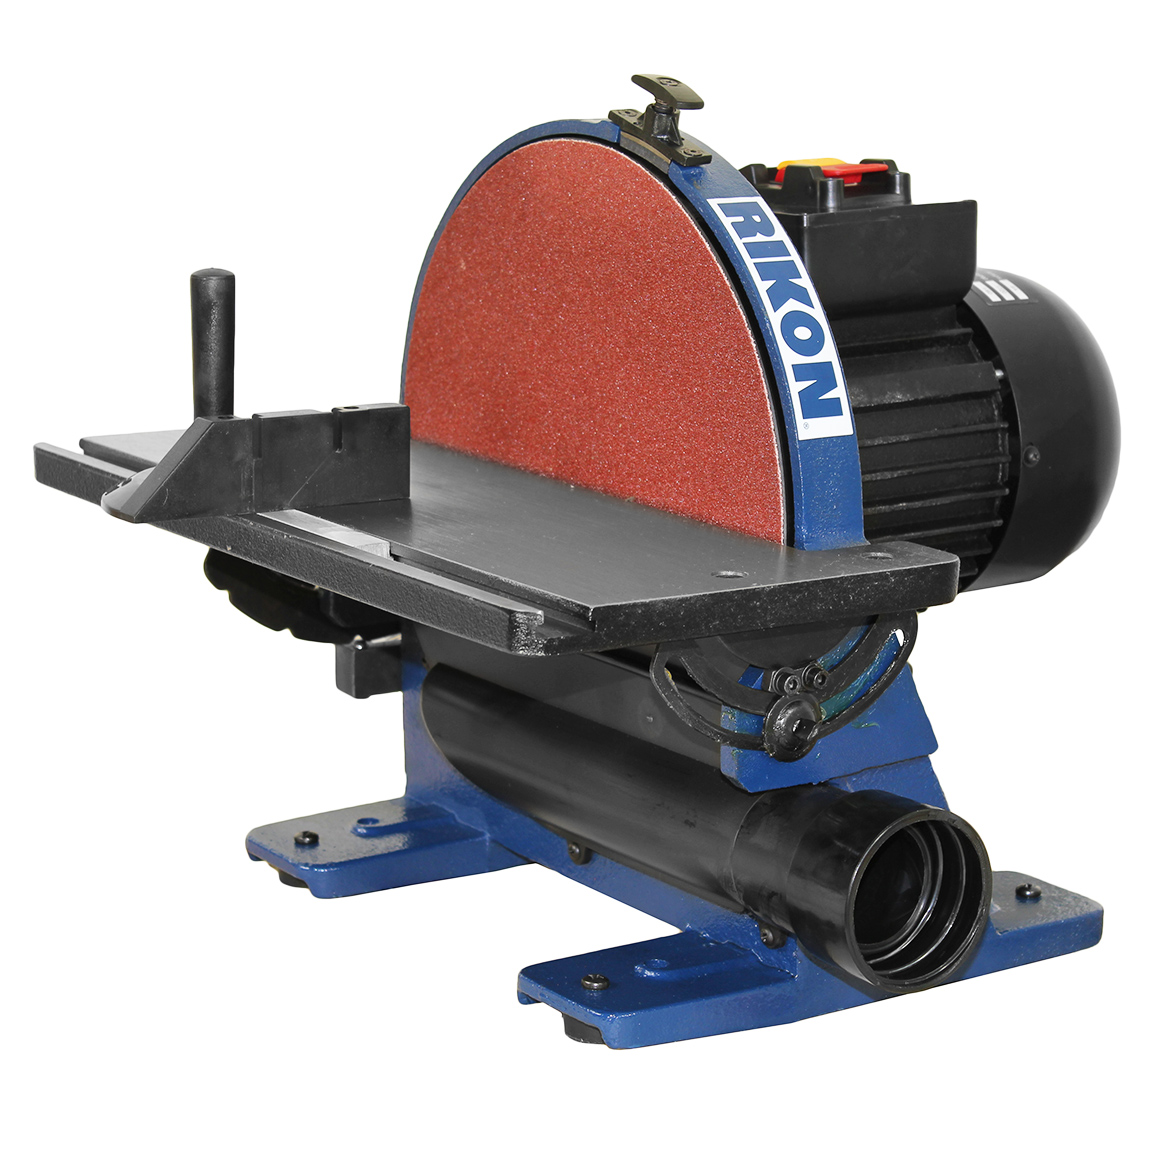 RIKON 51-200 120-Volt 12-Inch 1 2-Hp Durable Adjustable Bench Top Disc Sander by Rikon Power Tools